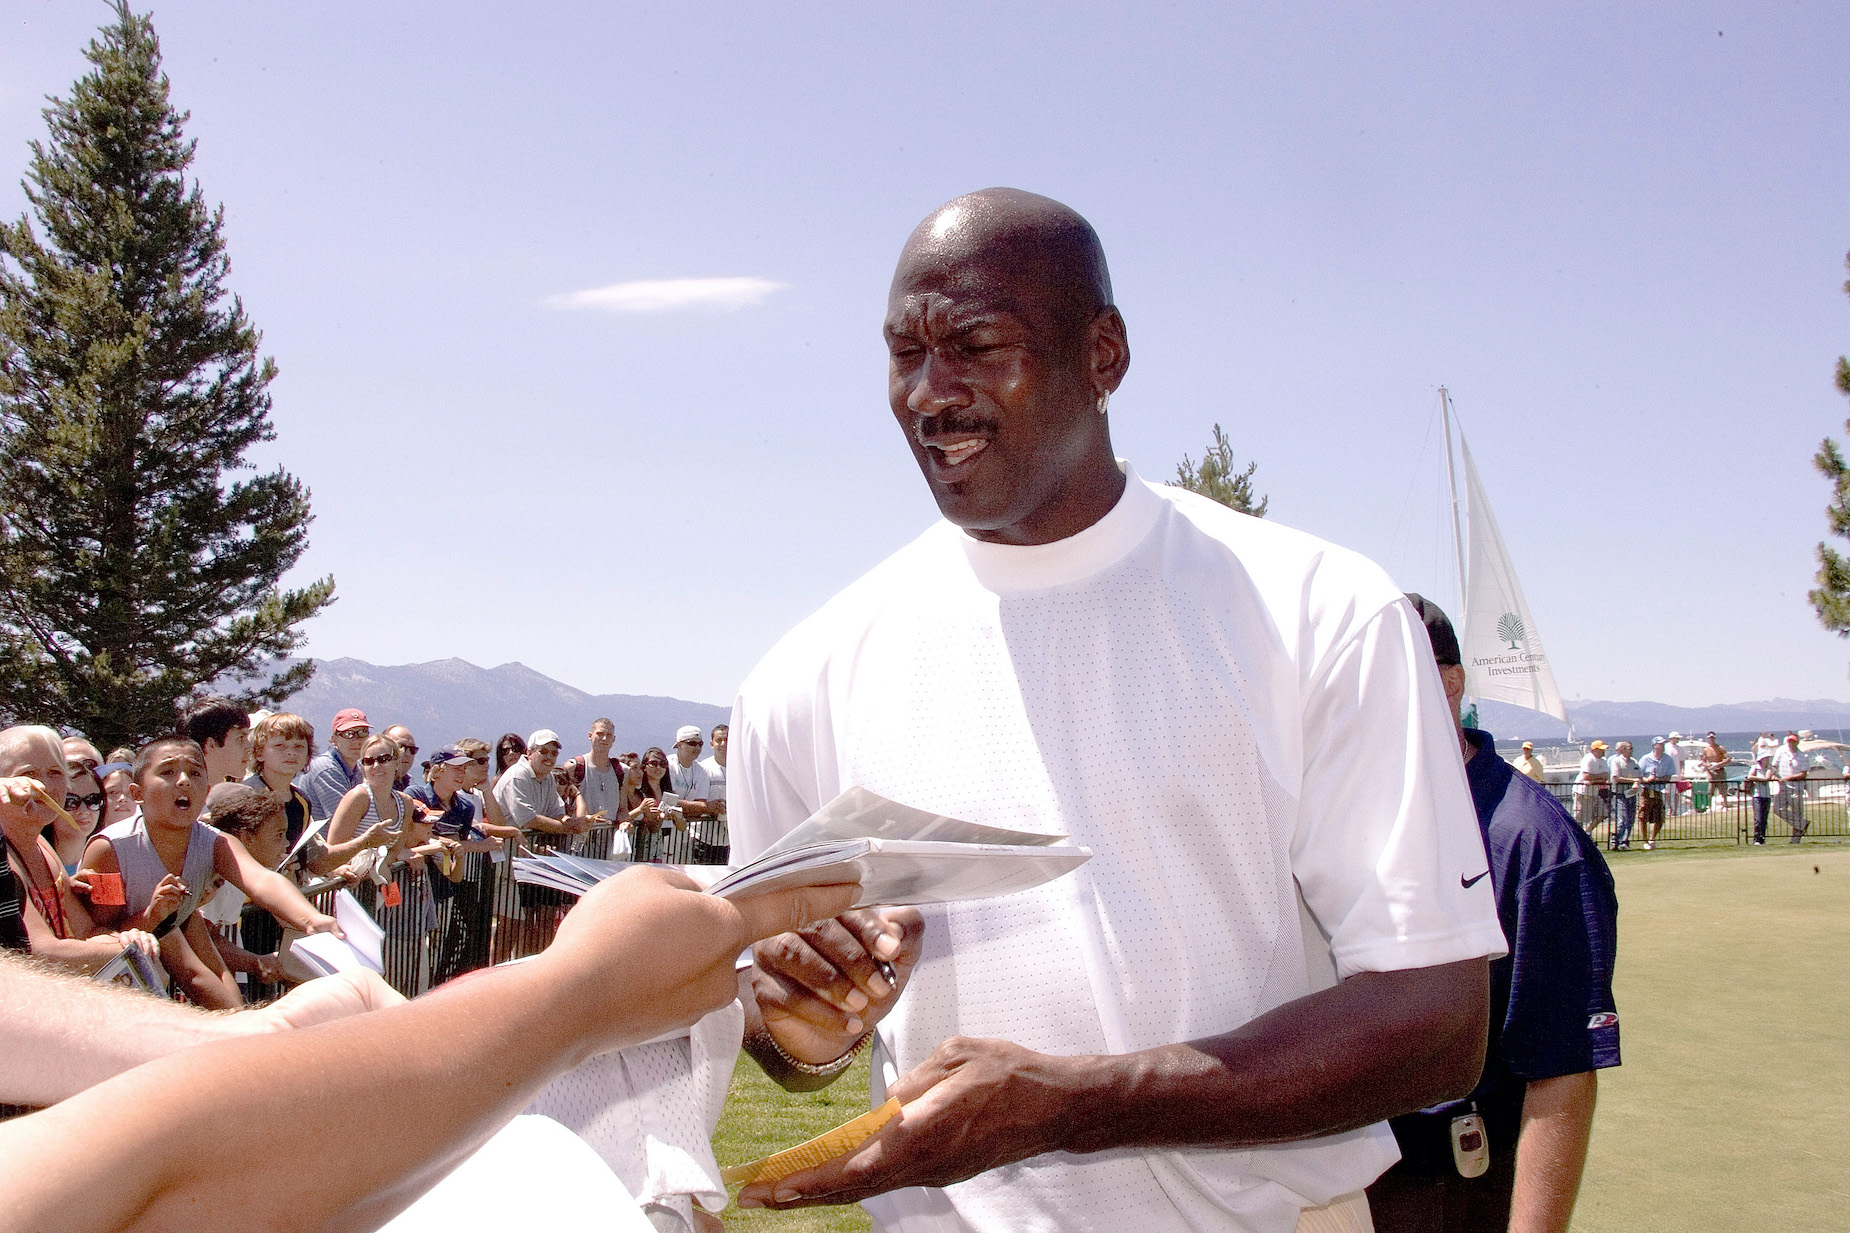 Chicago Bulls legend Michael Jordan signs an autograph on the golf course.